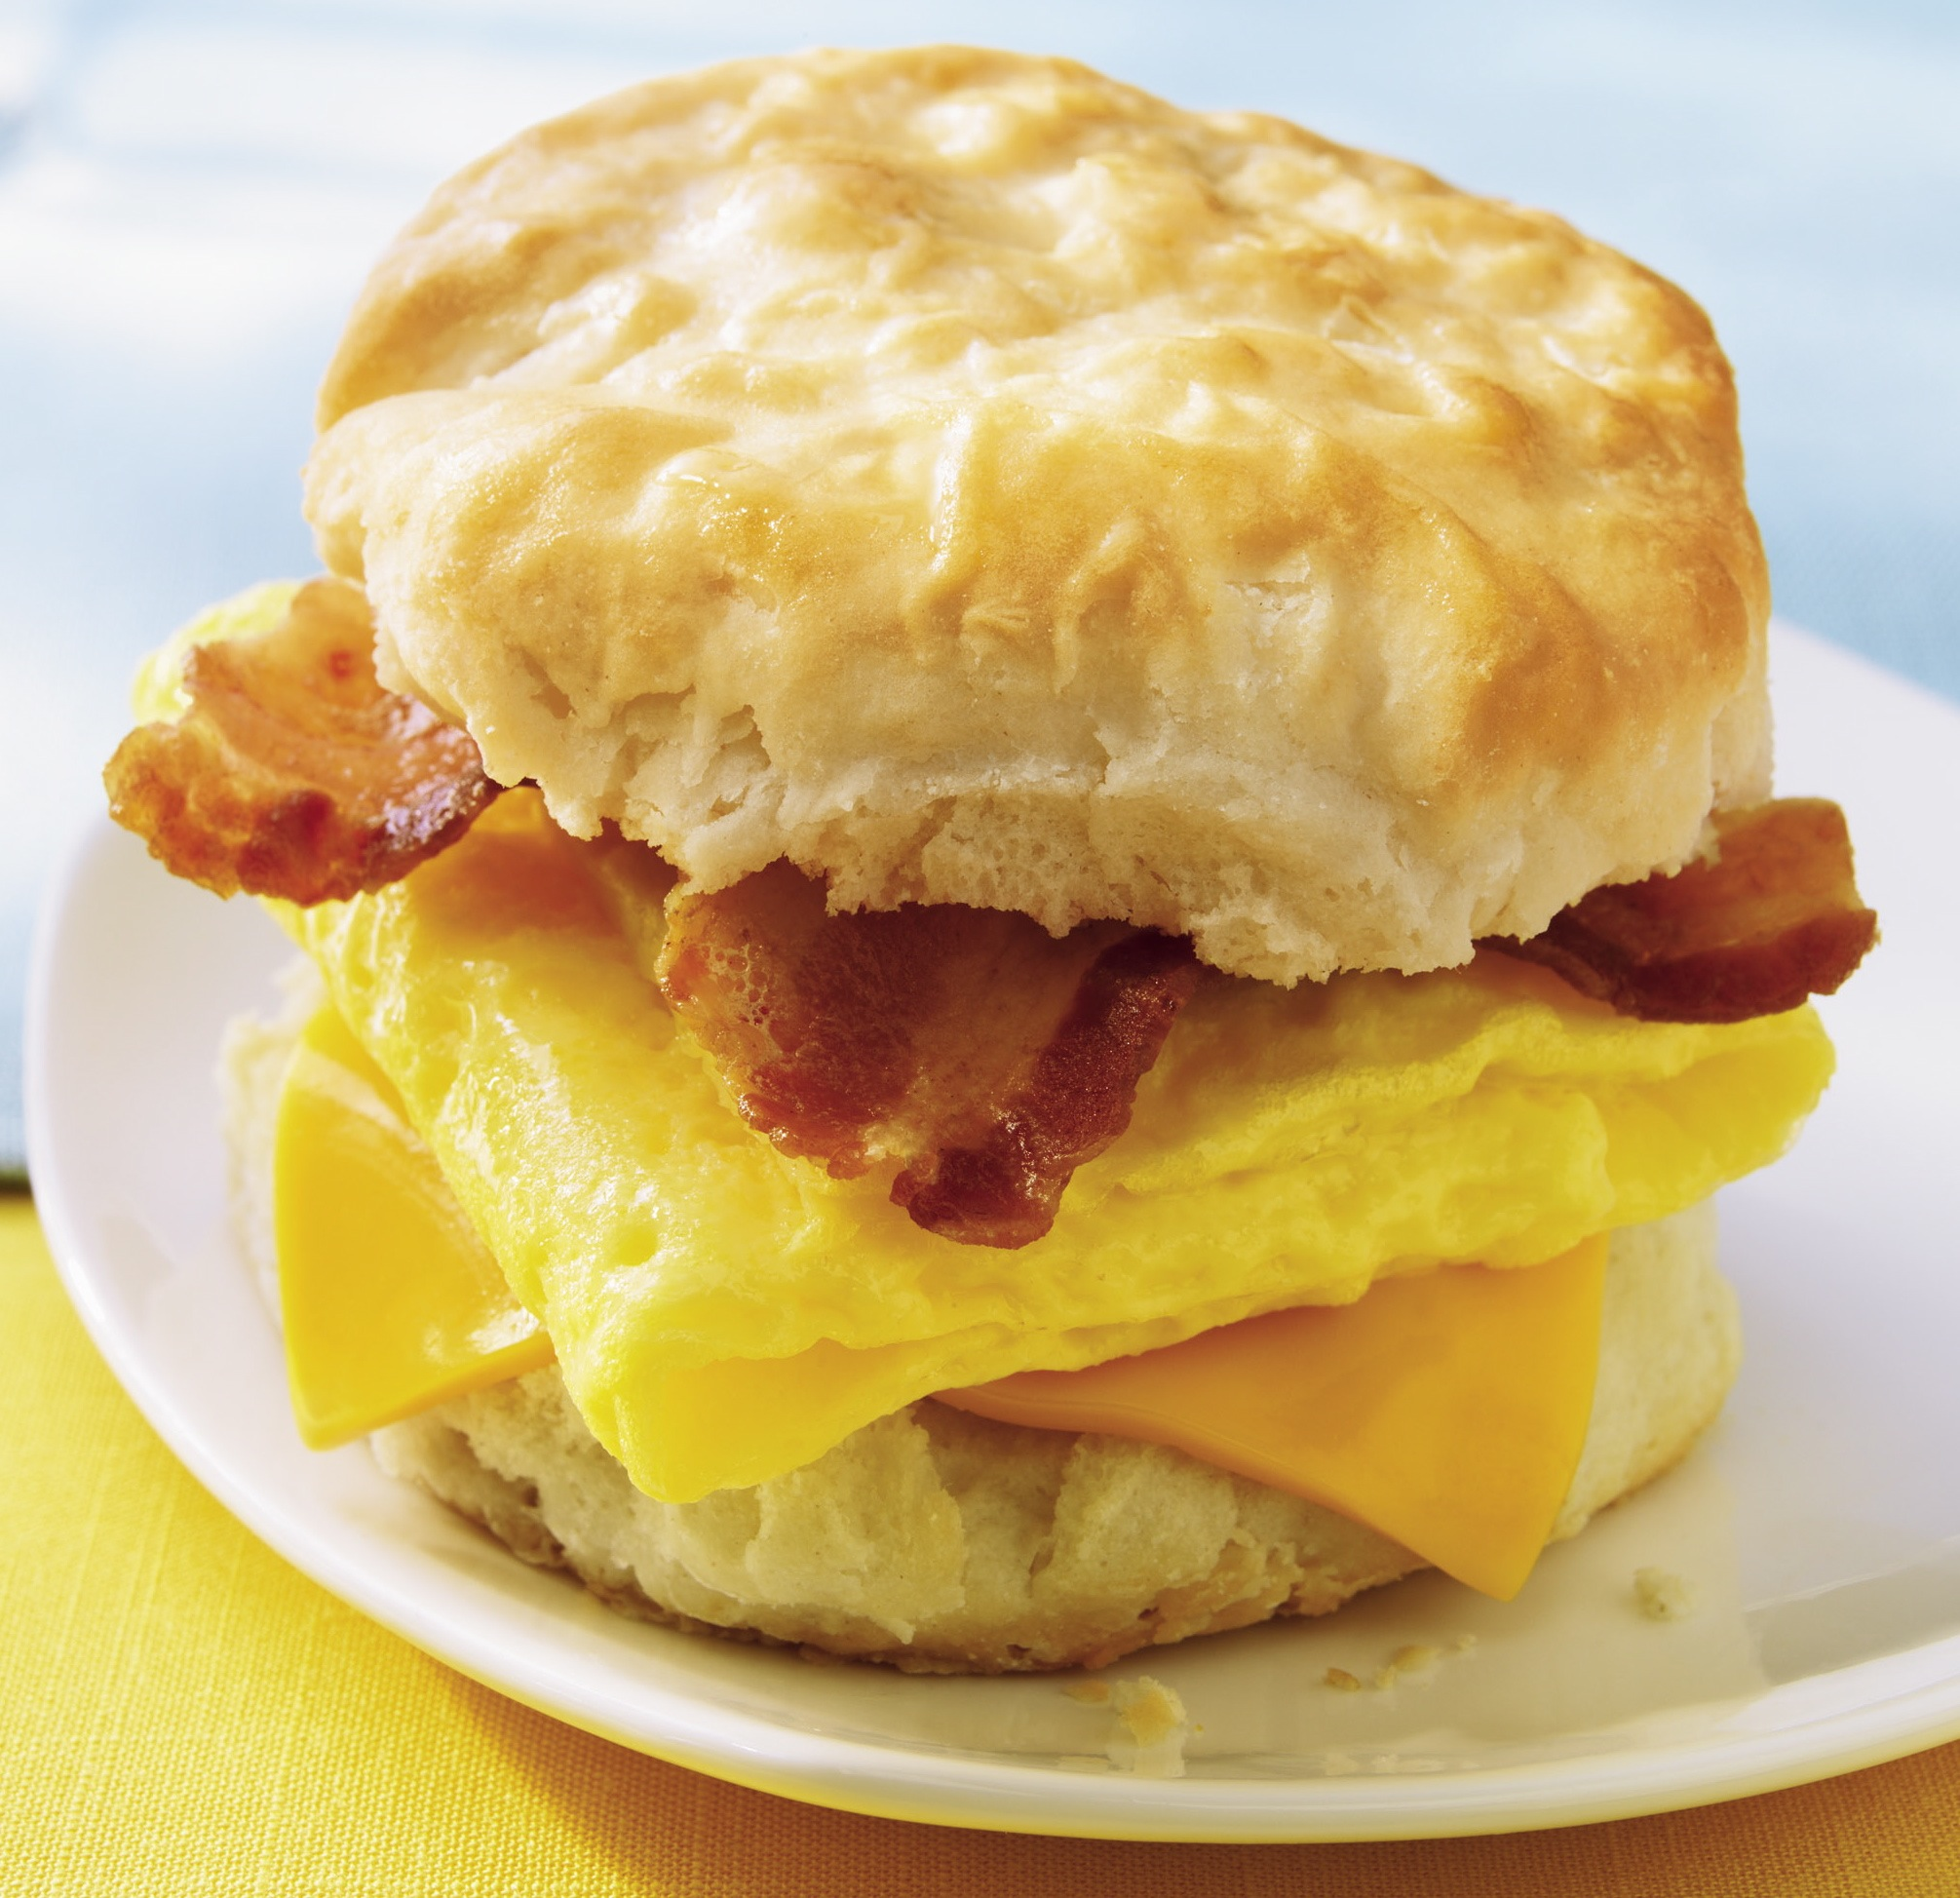 mcd egg mcmuffin jpg bacon and egg muffin cups bacon egg cups no carbs ...